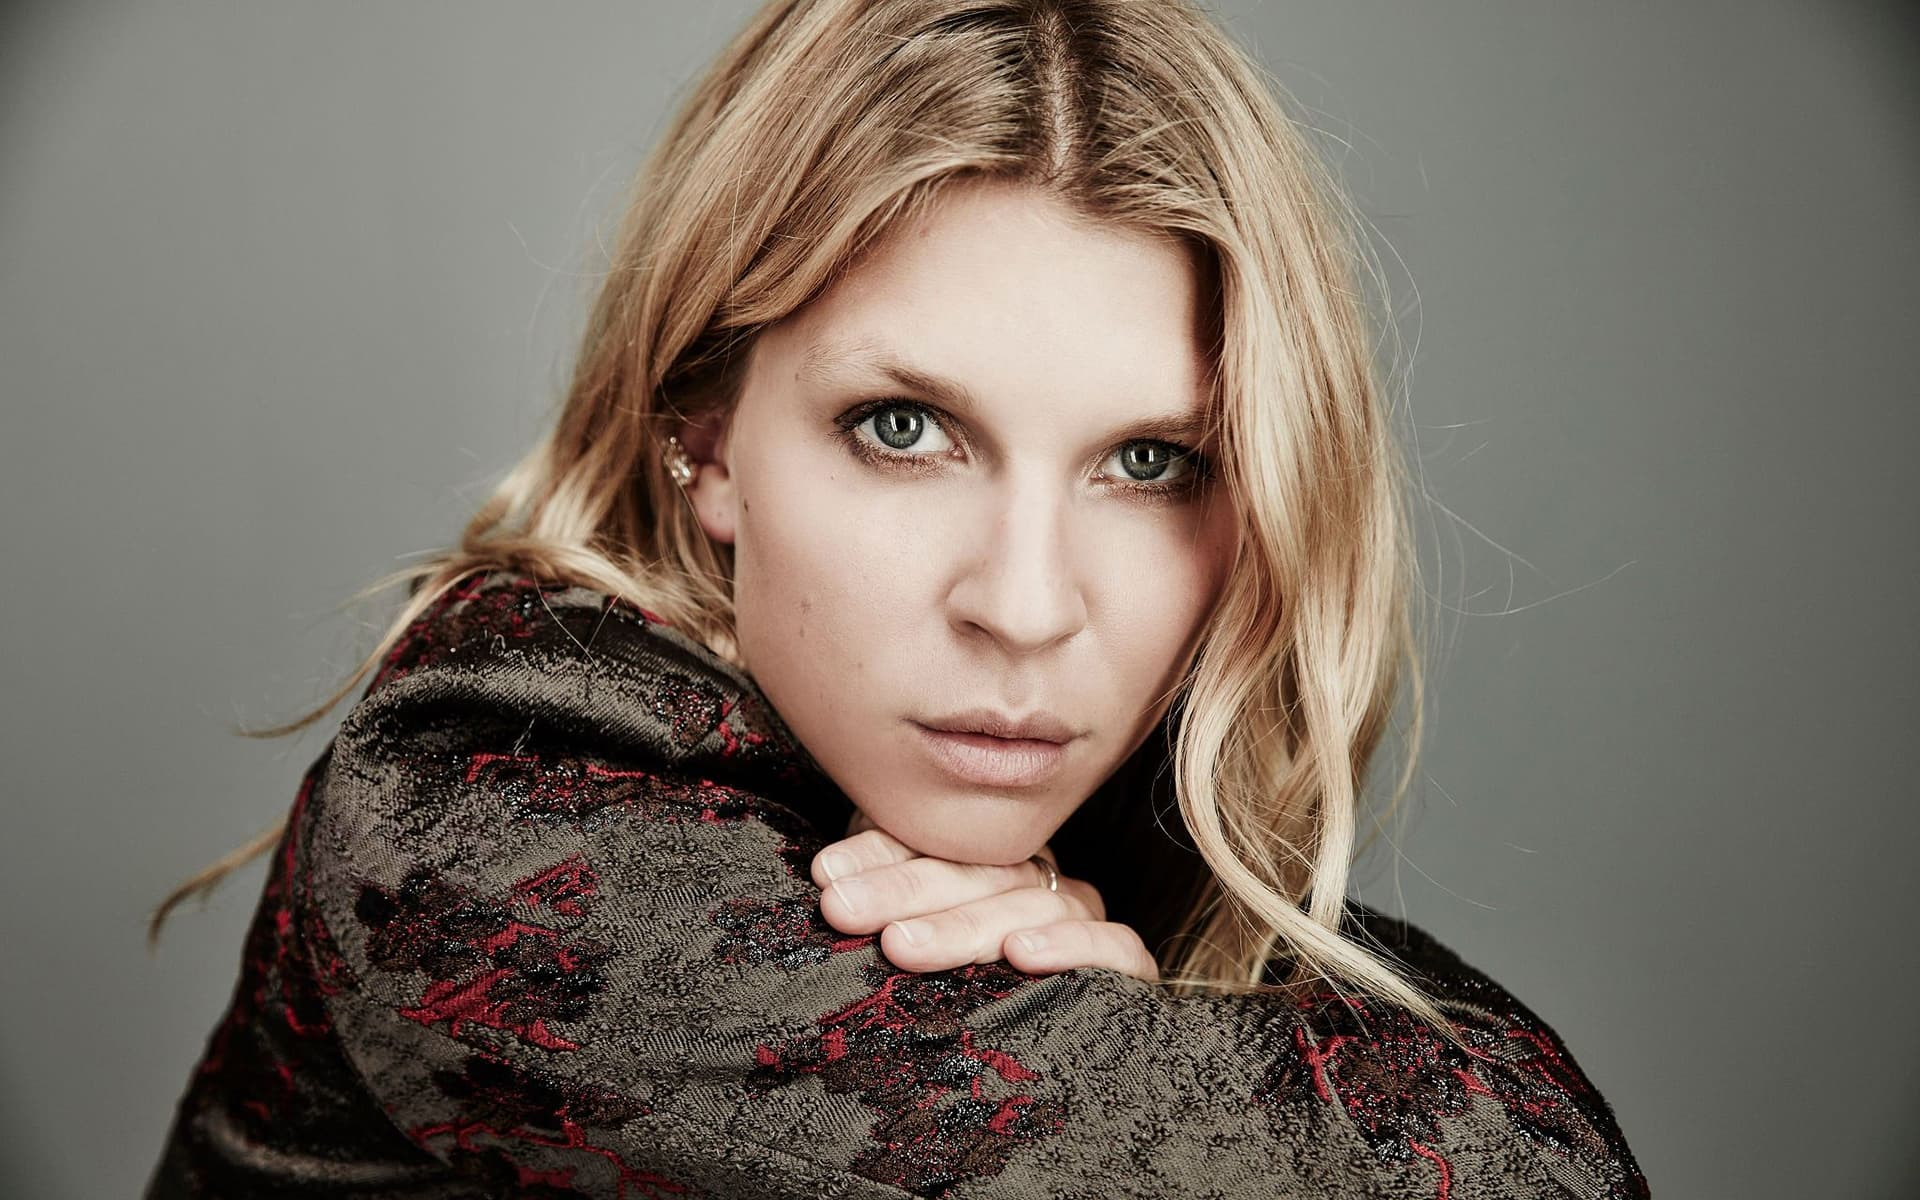 1920x1200 - Clemence Poesy Wallpapers 9